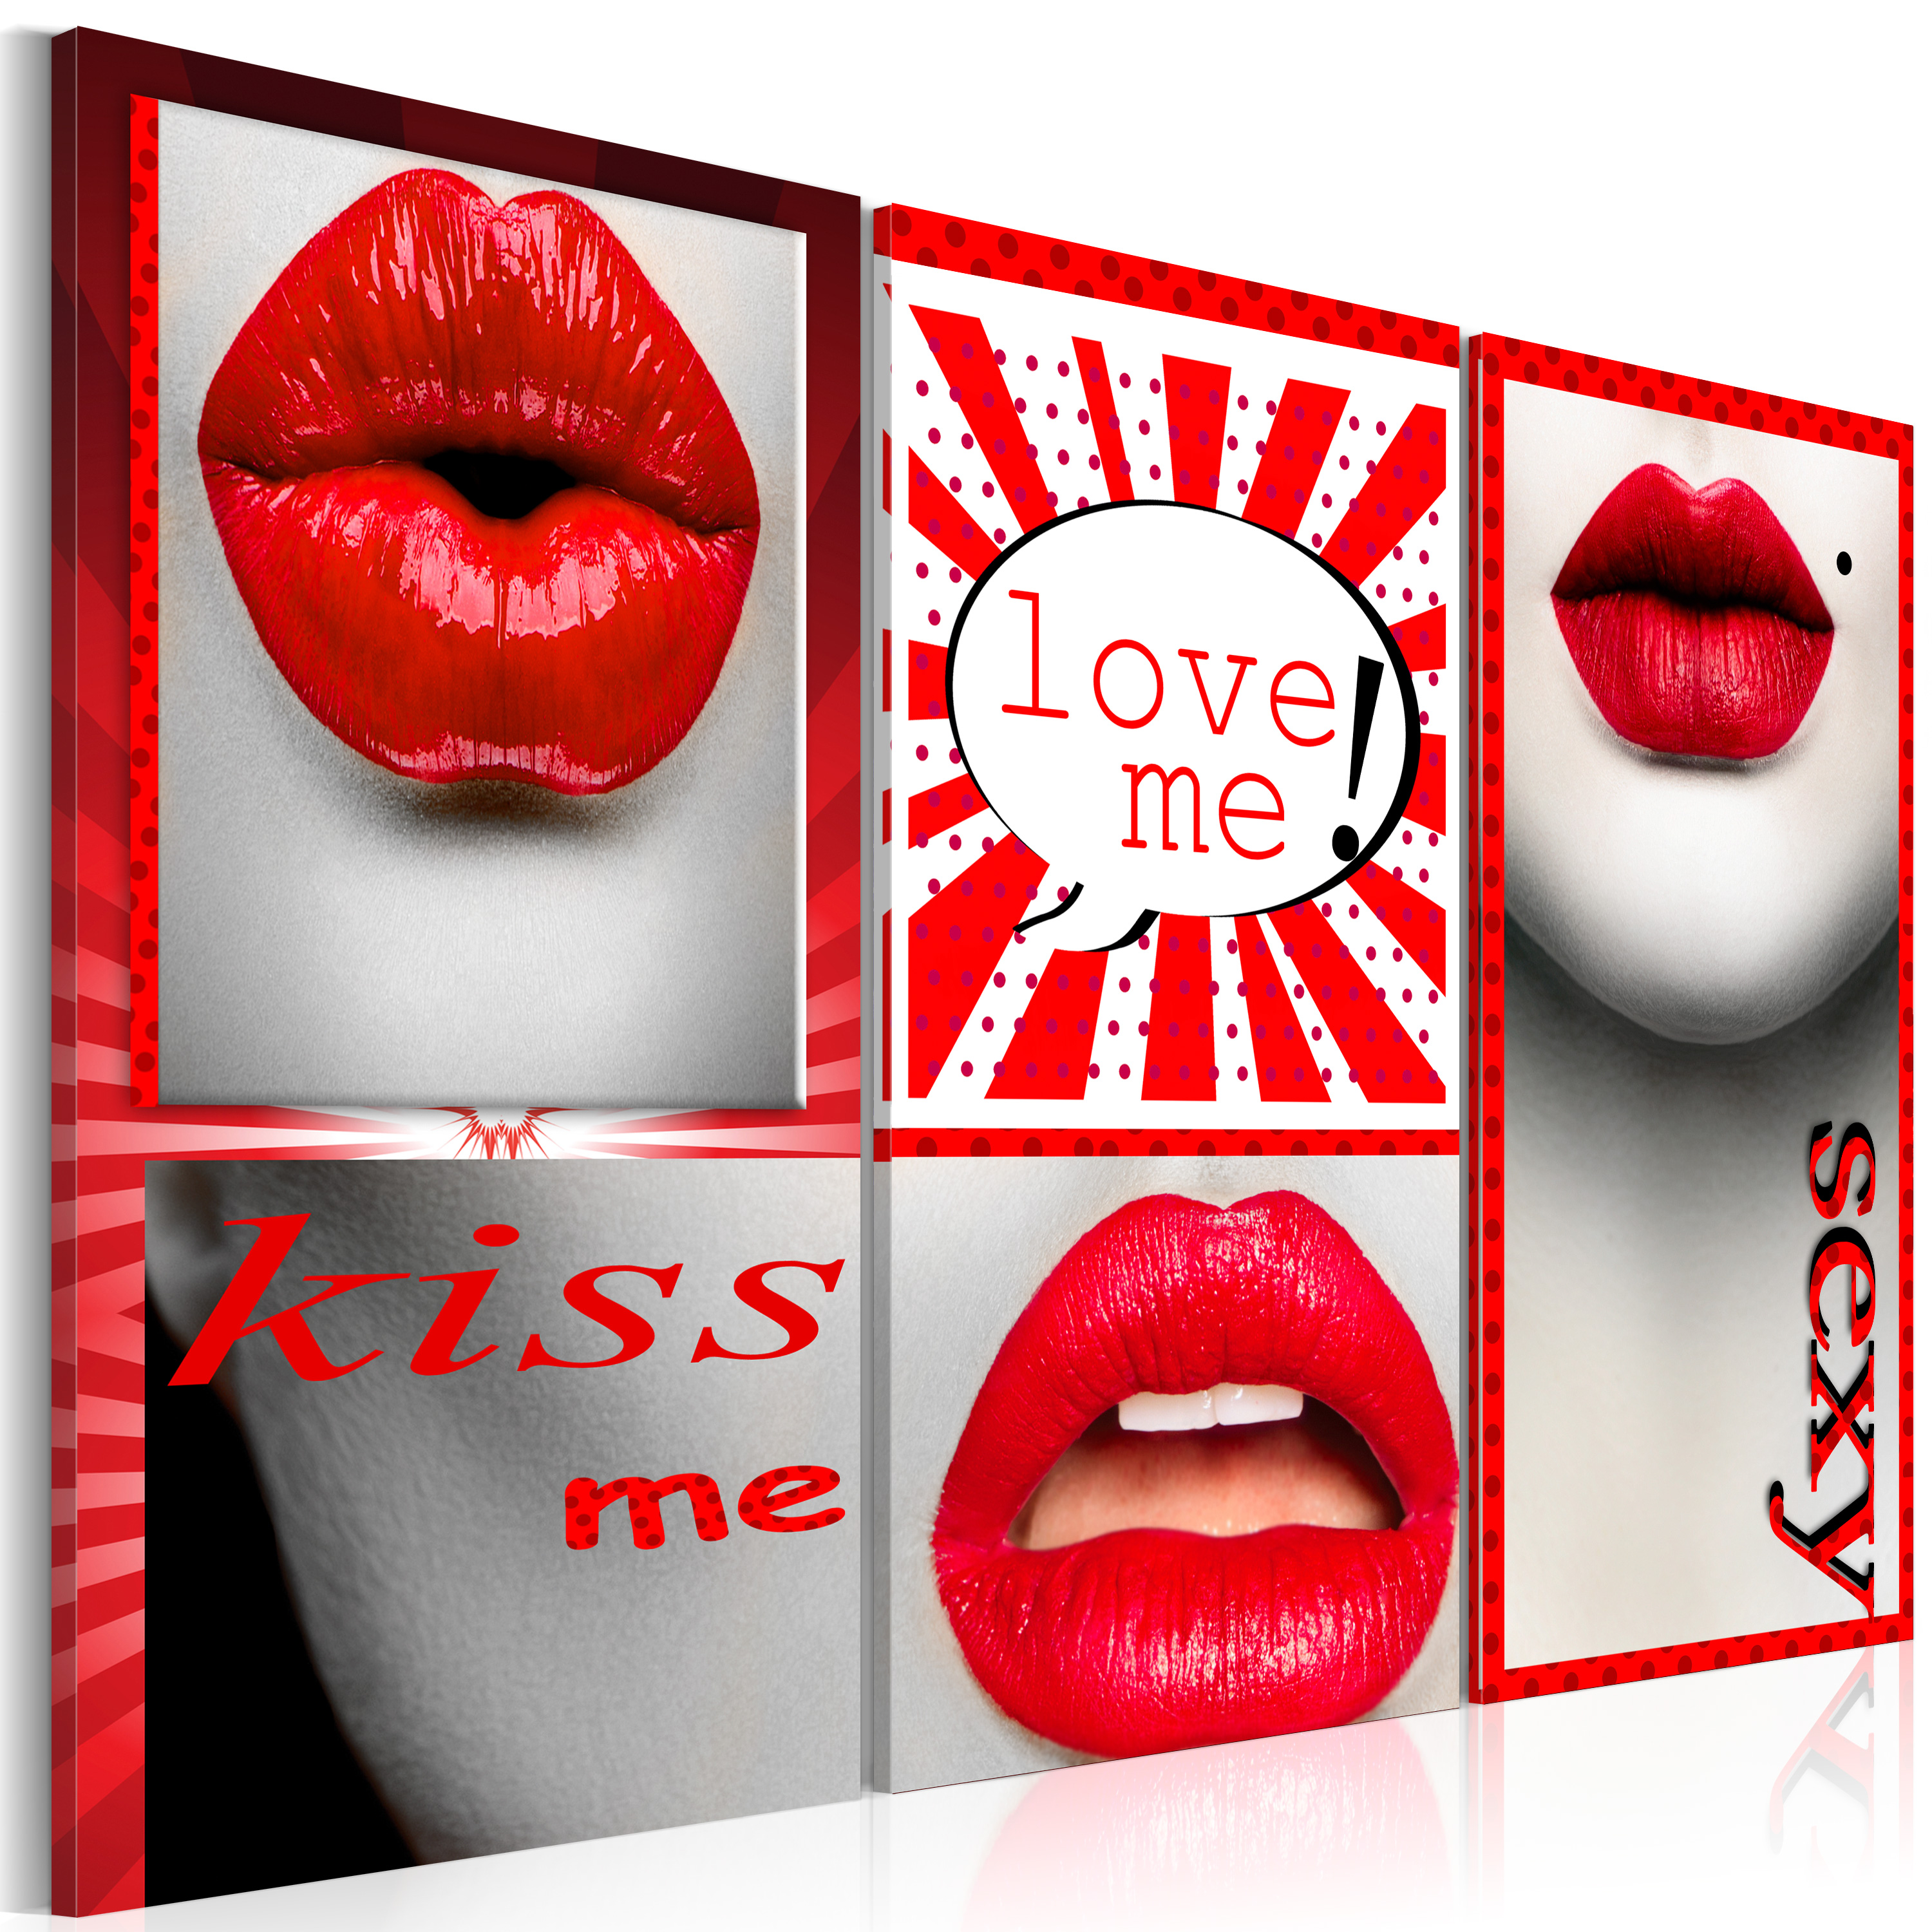 Tableau - Kiss me! Love me!